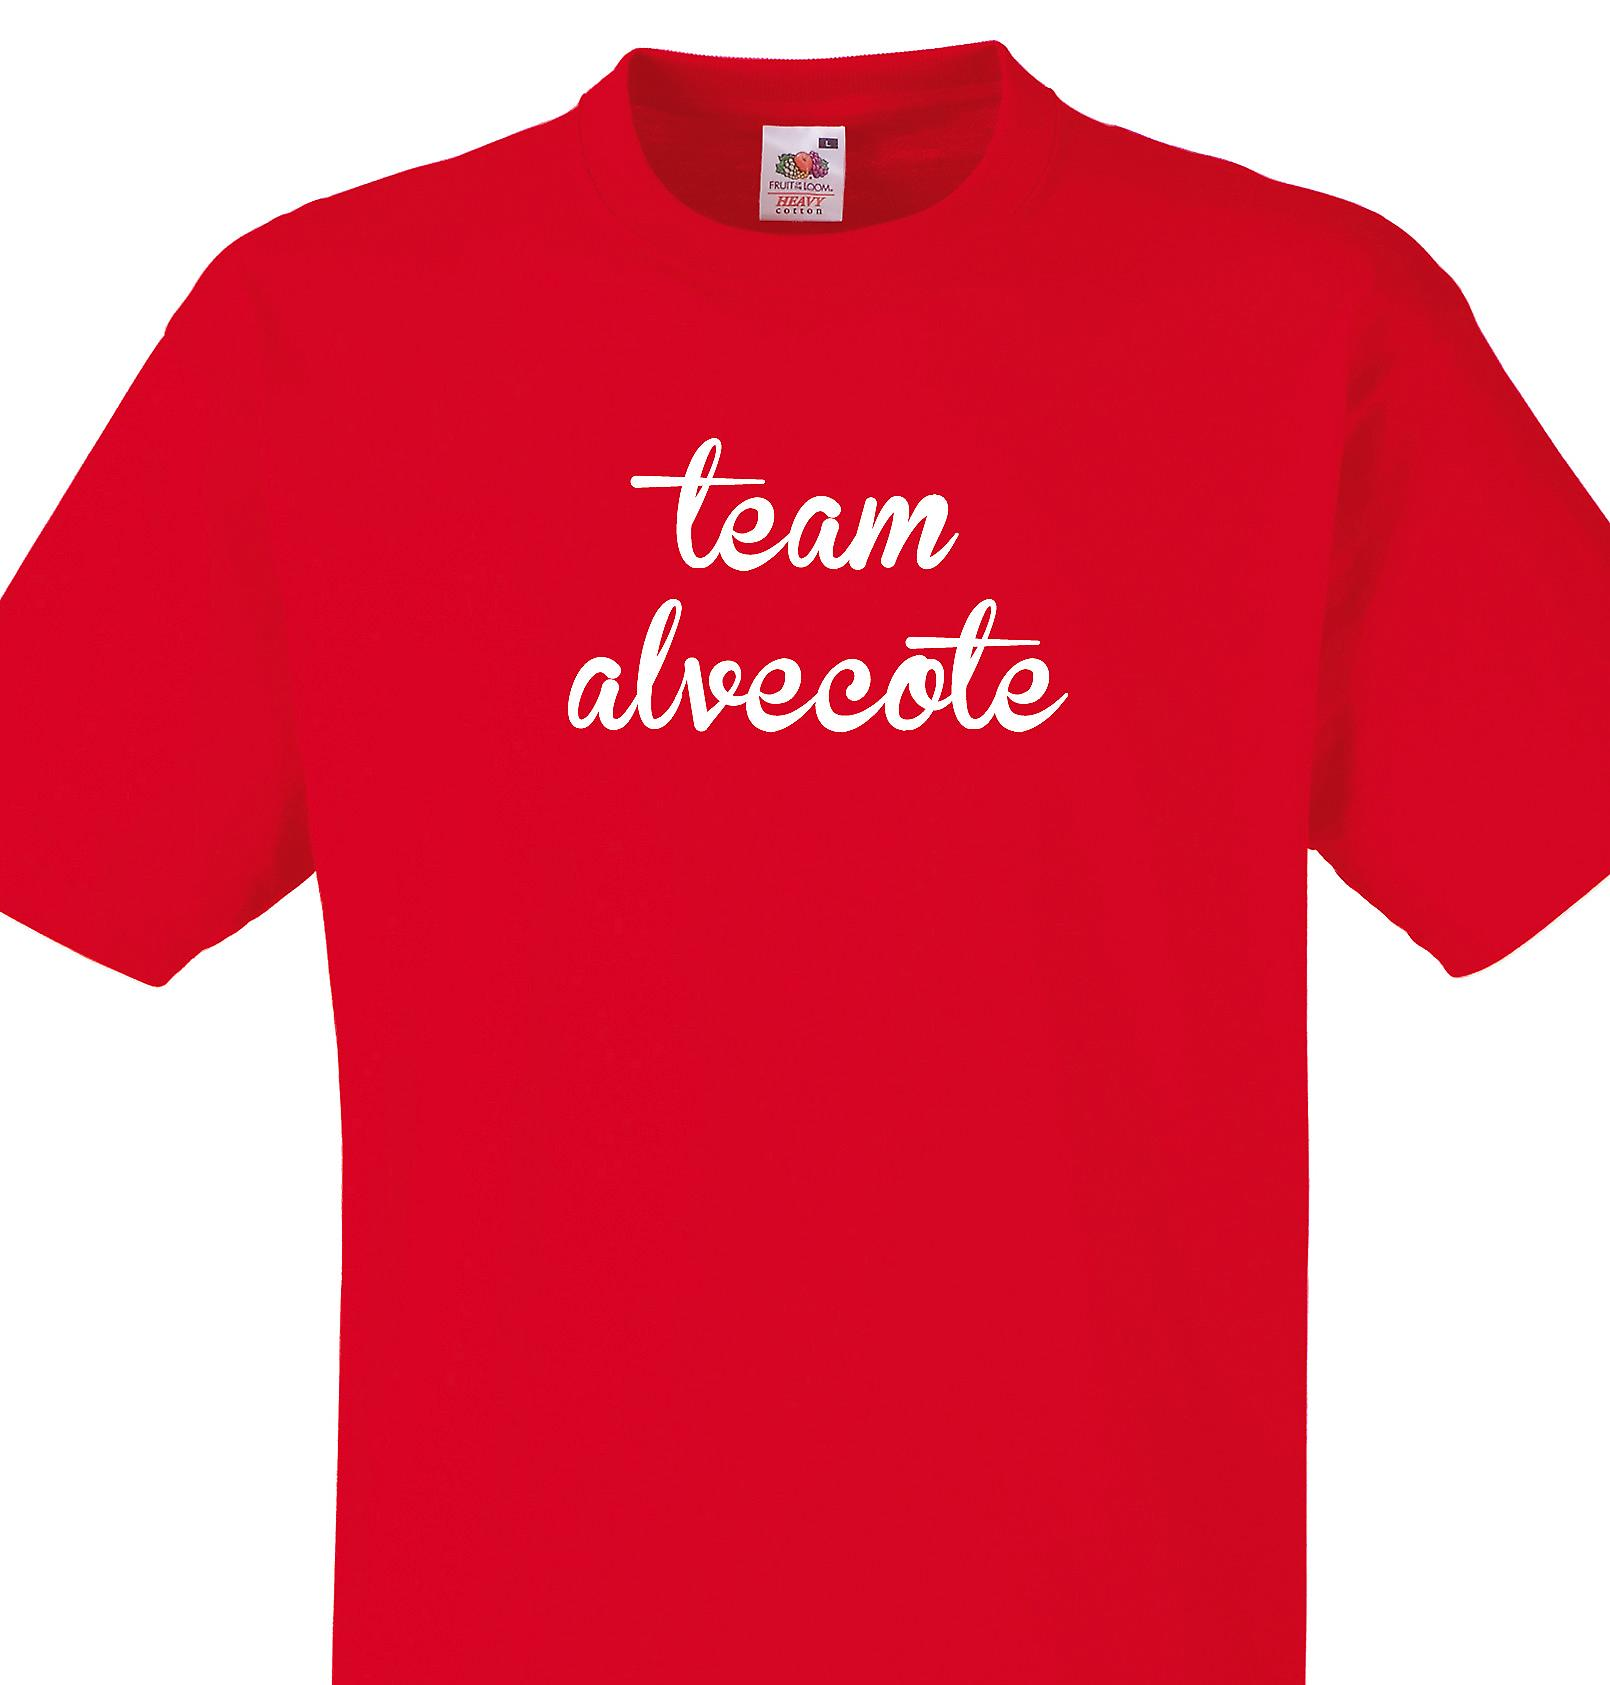 Team Alvecote Red T shirt